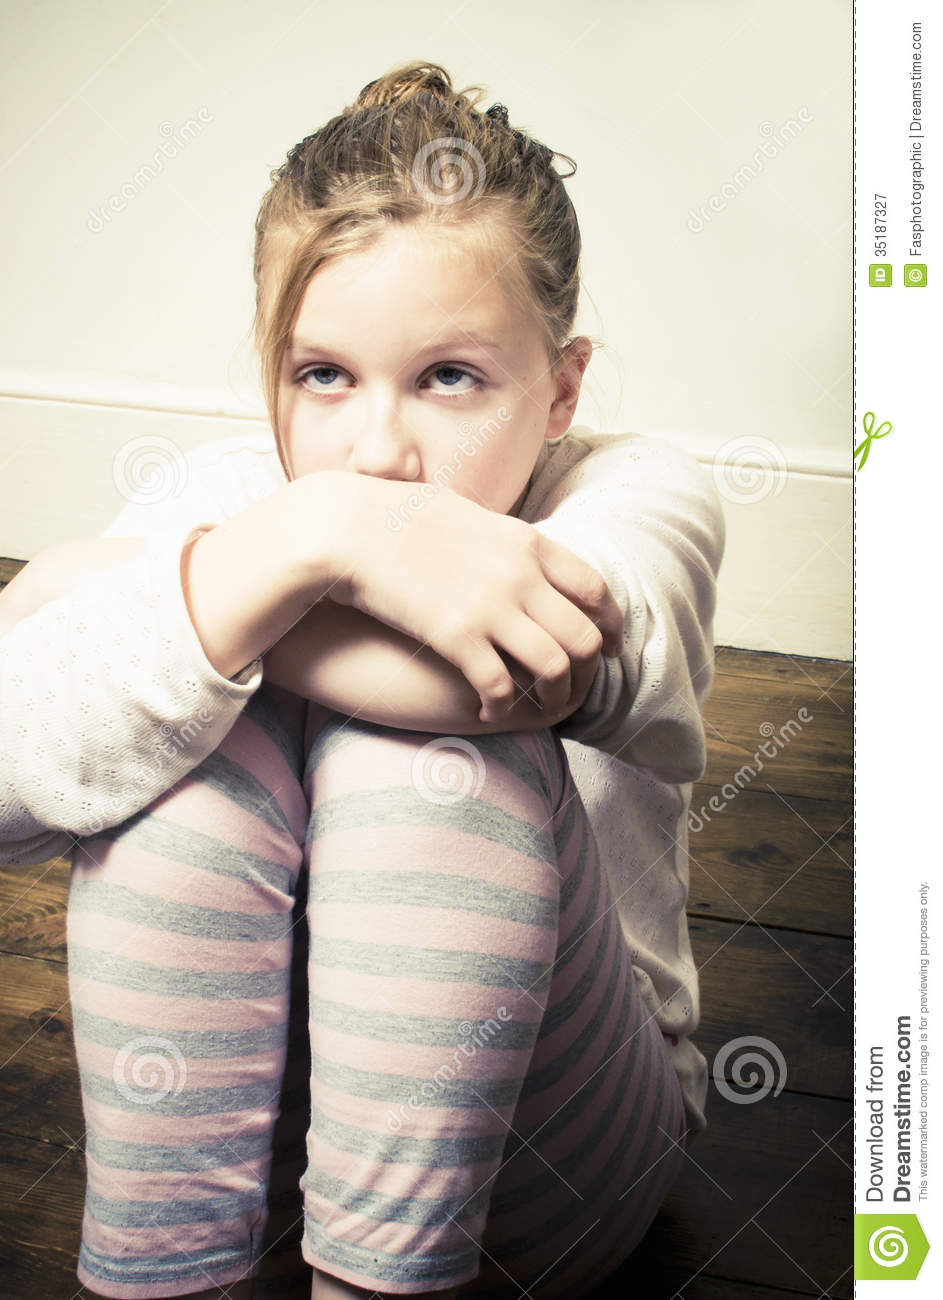 scared child royalty free stock photography image 35187327 Report Clip Art Report Clip Art